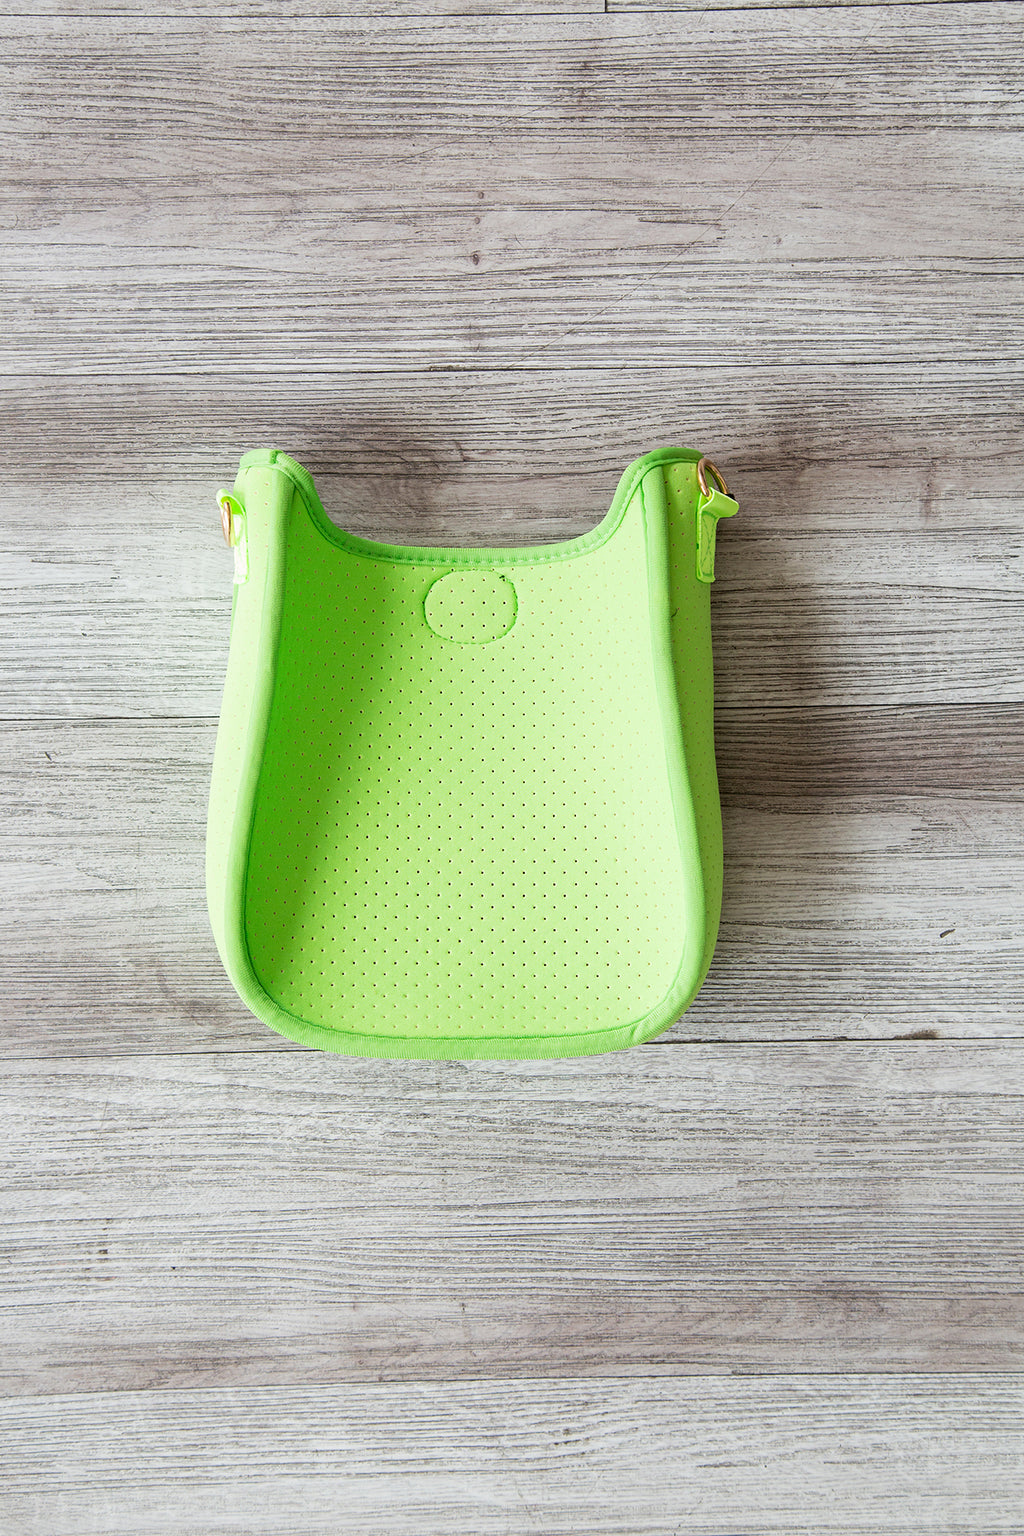 Mini Neoprene Bag without Strap